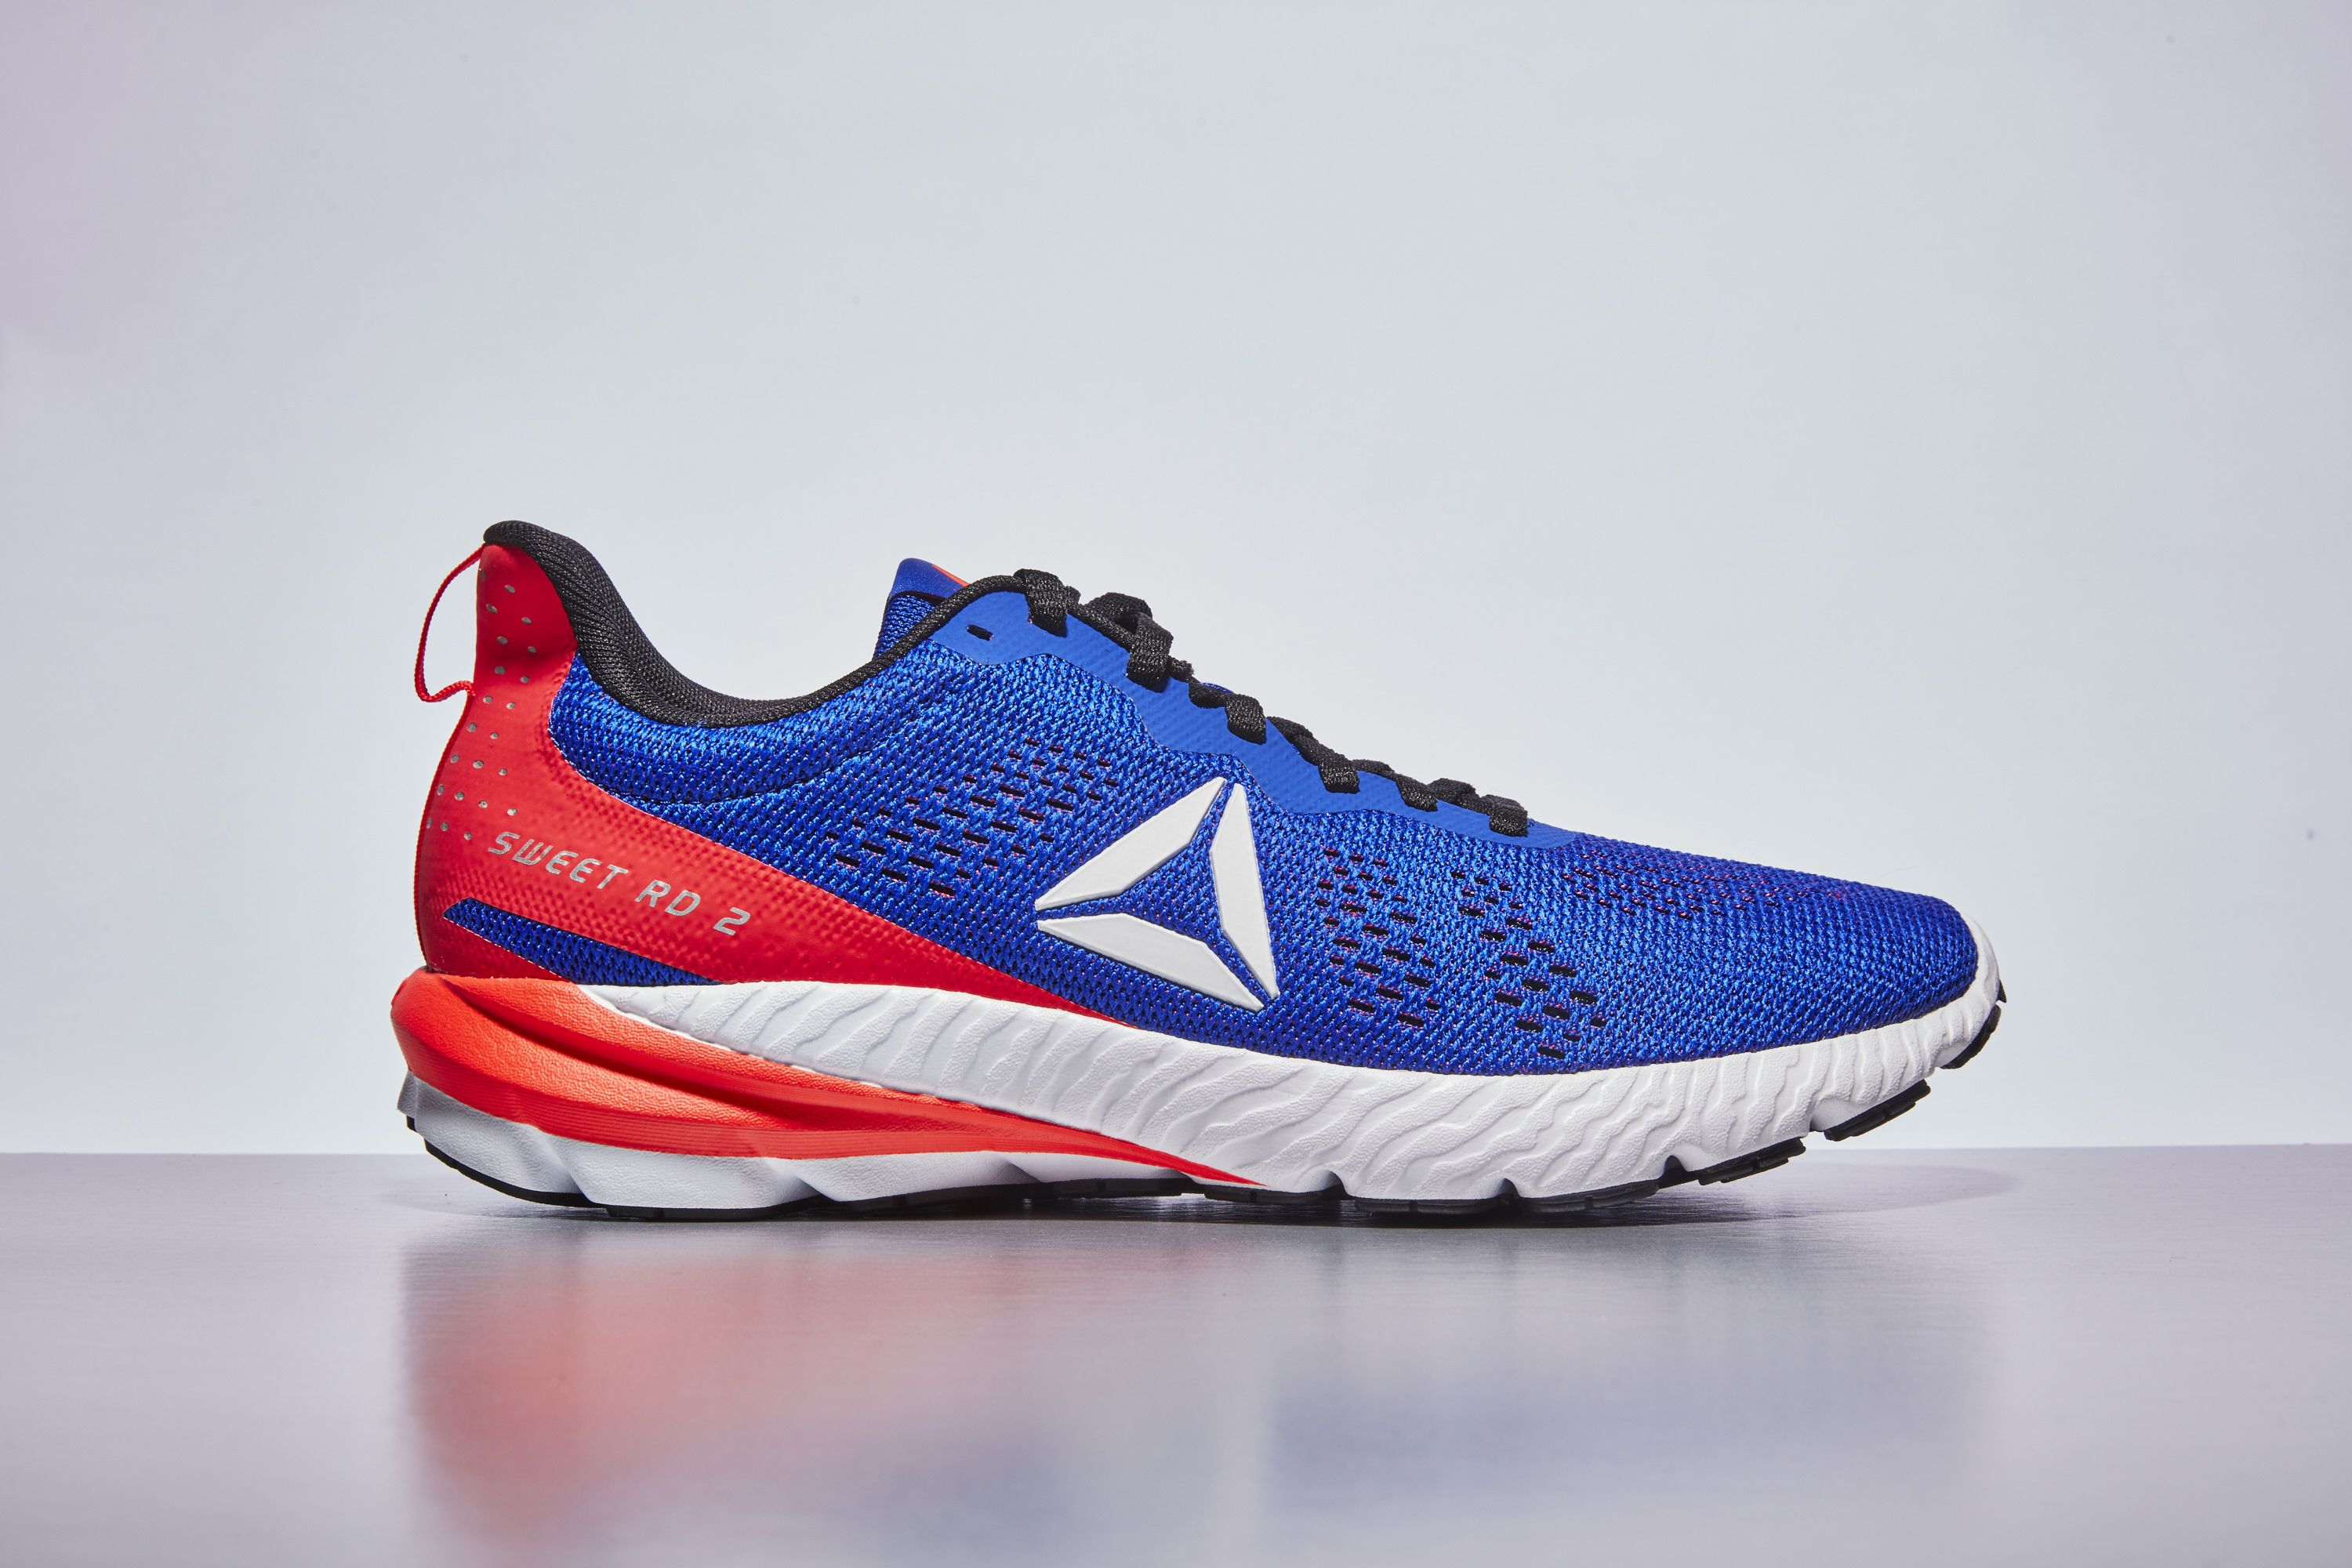 ca4c44d26c17 Reebok Running Shoes 2019